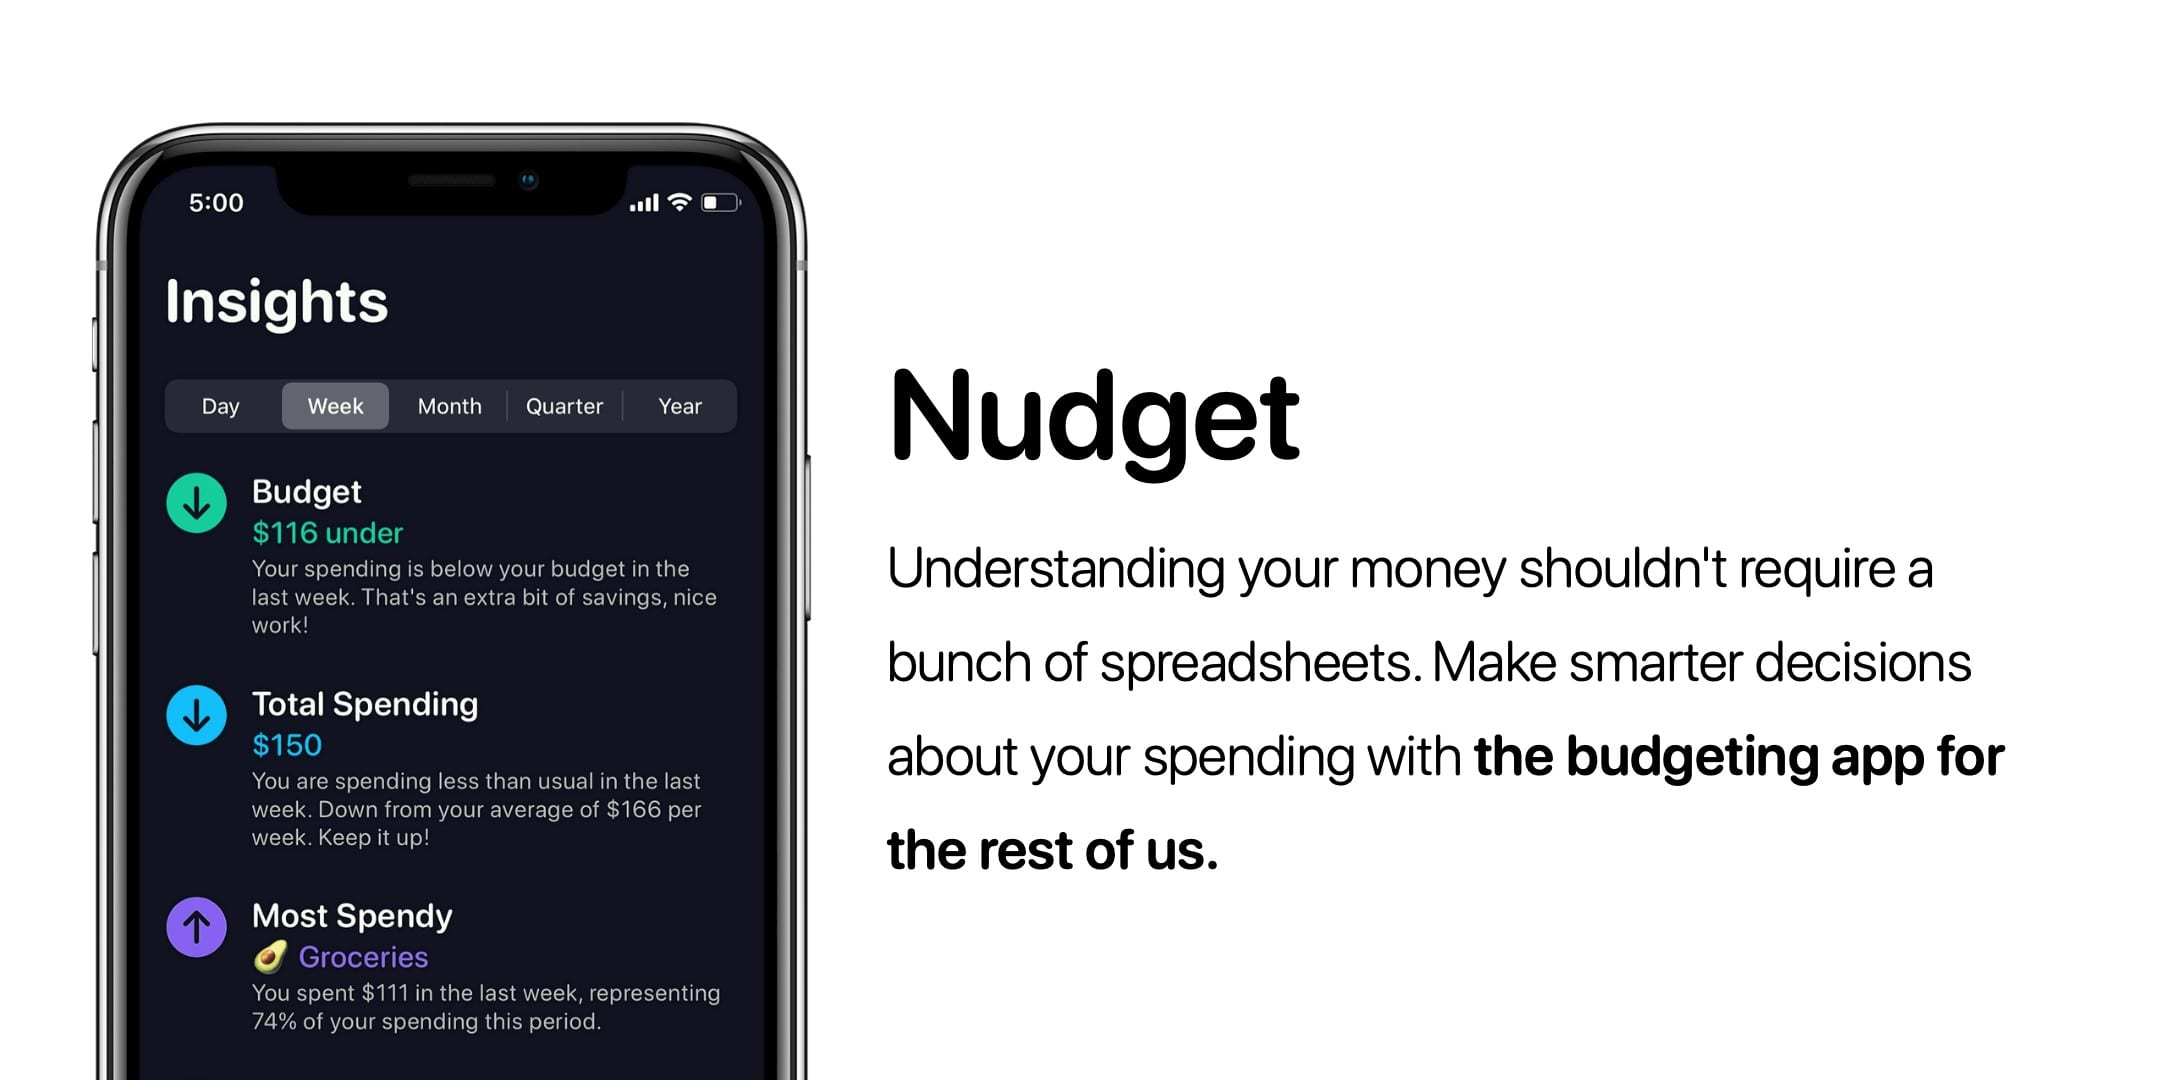 Nudget Overview